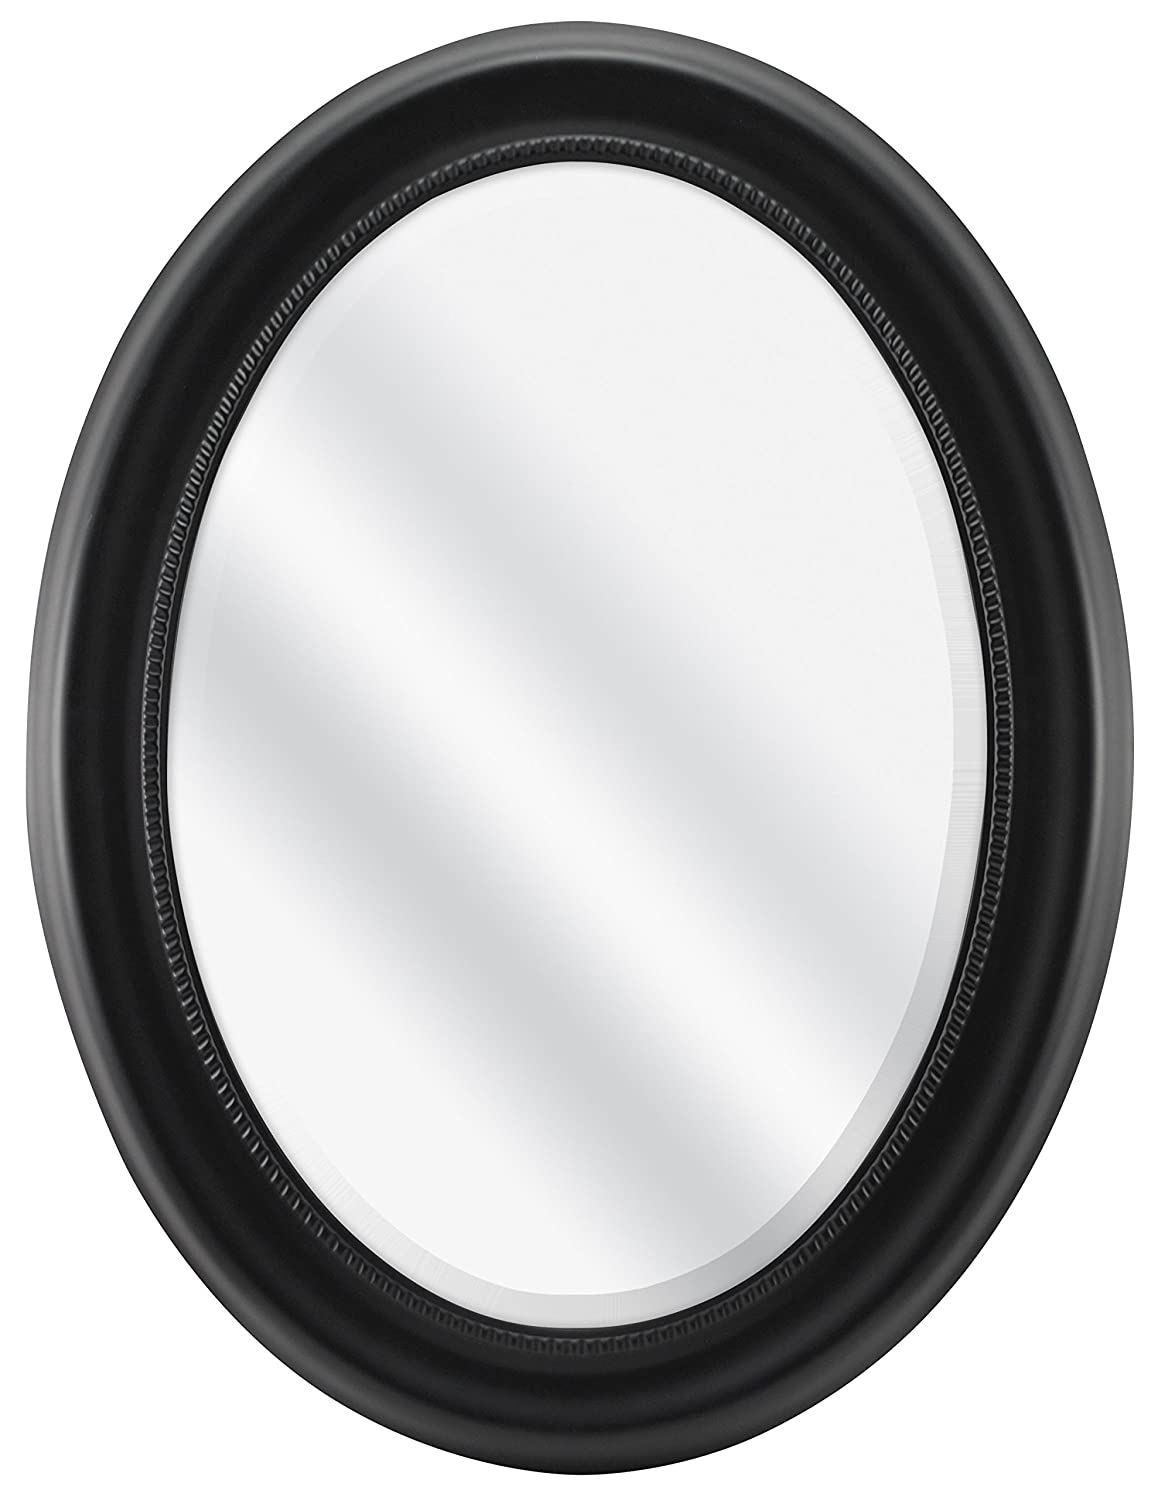 MCS Oval Mirror Frame with Black Finish, 22.5x29.5 22.5x29.5 MCS Industries 65715